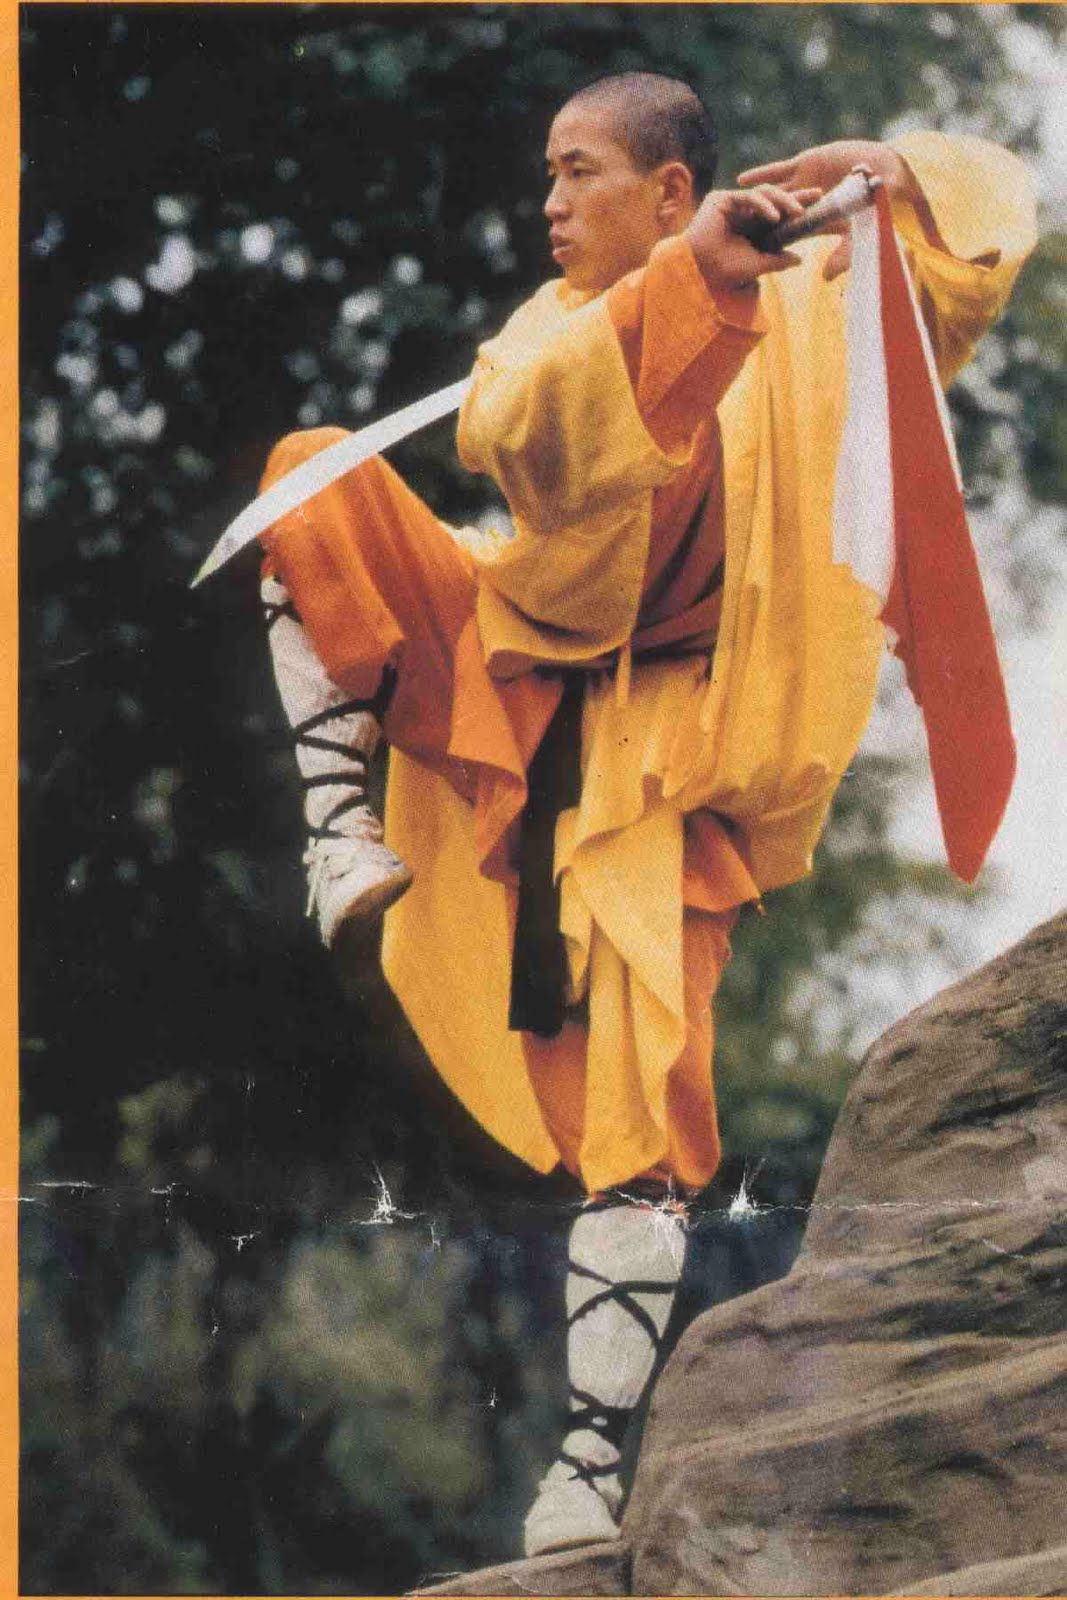 shaolin monk Fighting monks mastered the staff, then explored other avenues for martial skill and enlightenment.